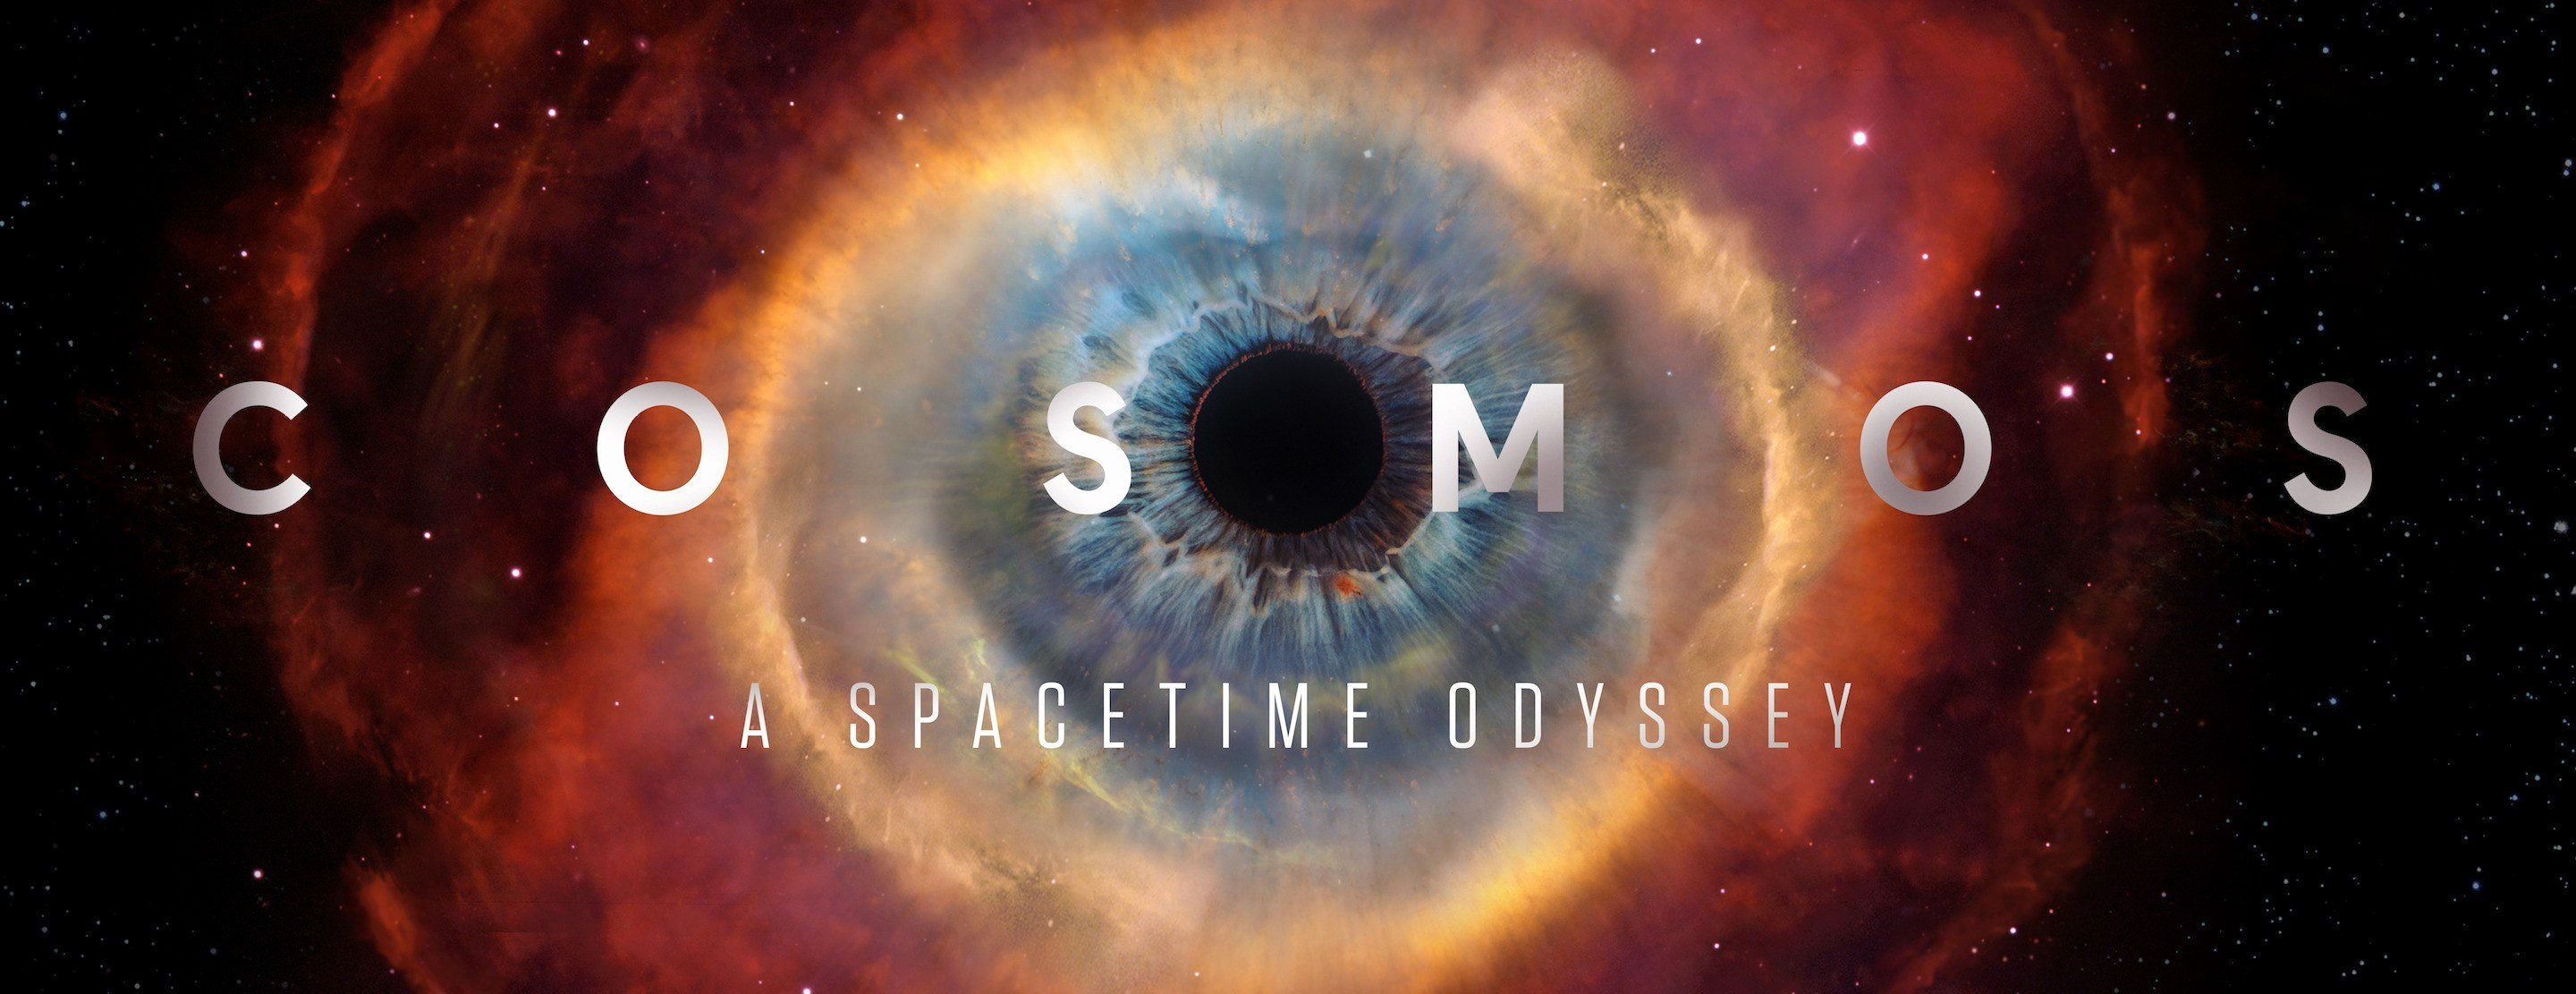 Cosmos Episode 1 Worksheet Answers New Taking A First Look